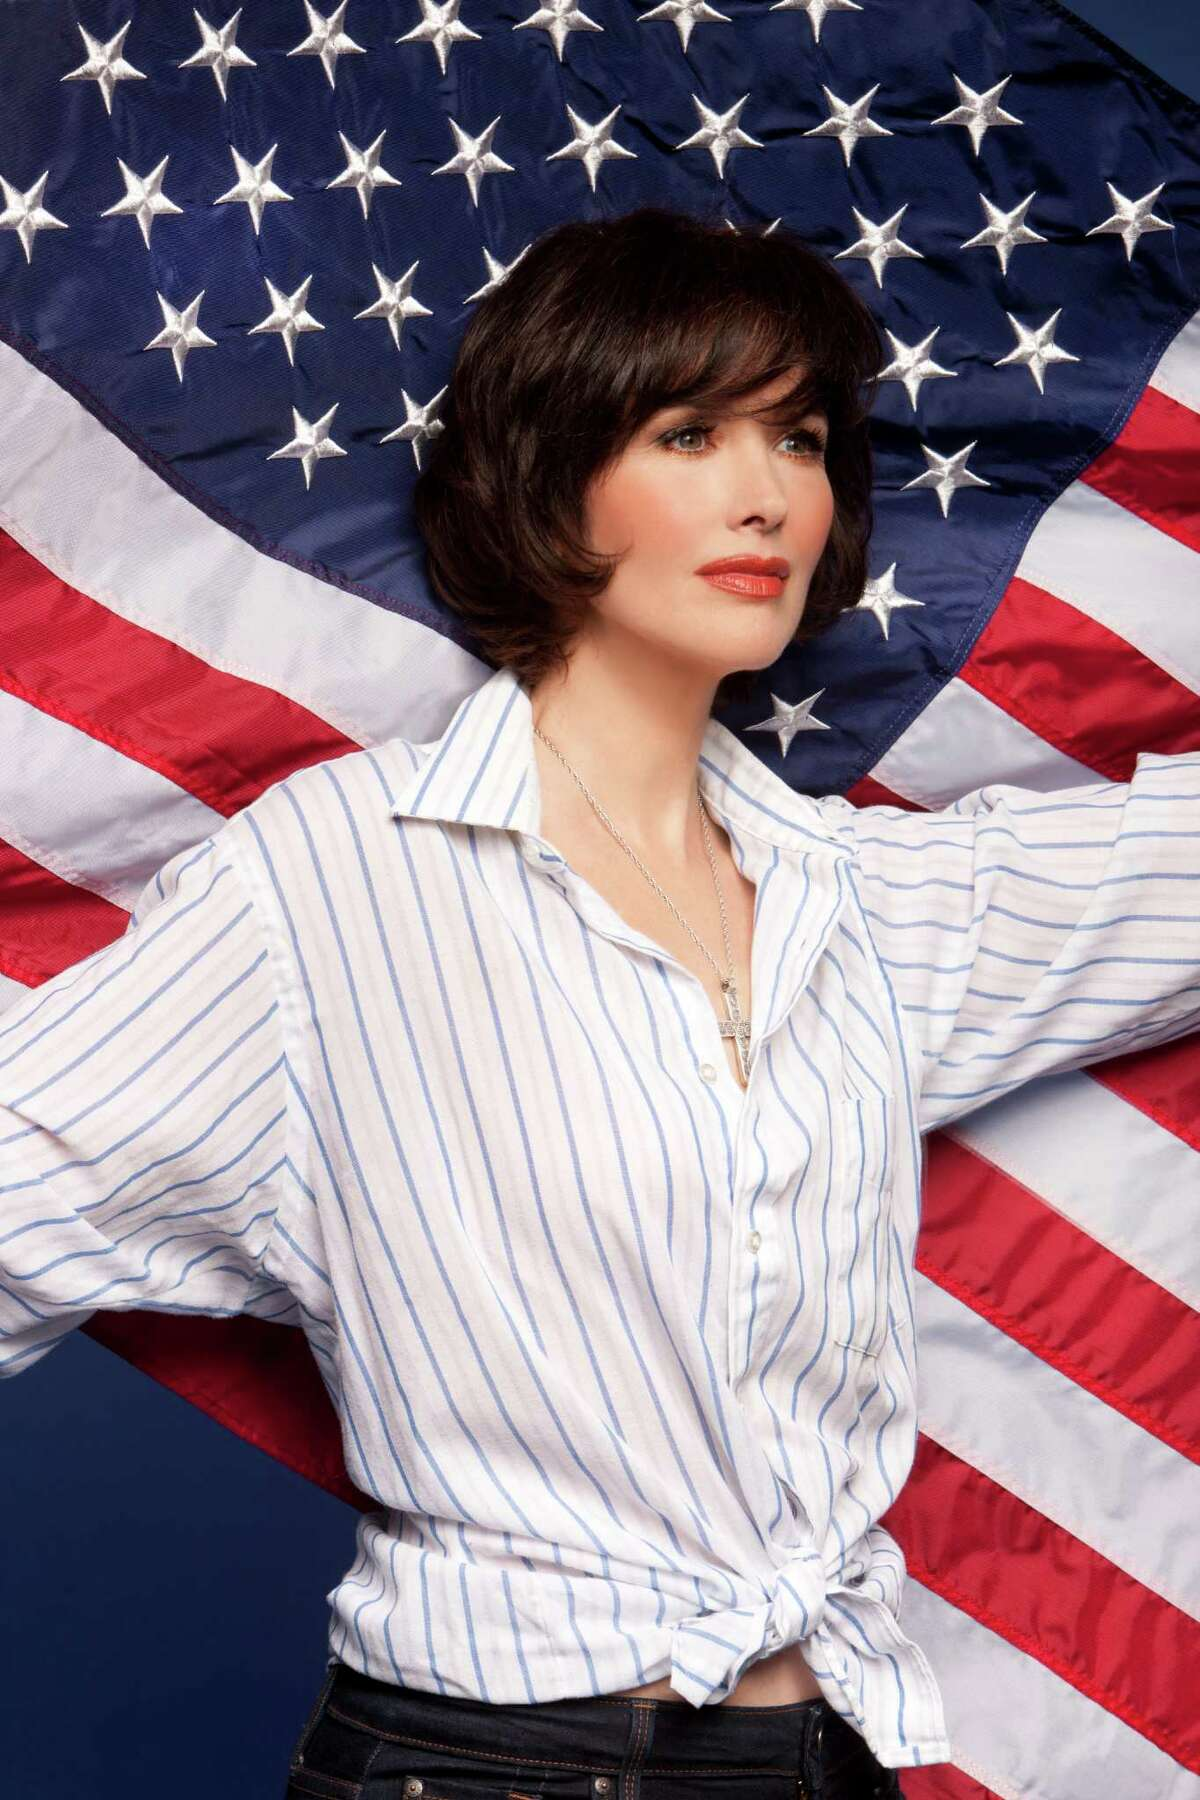 """Actress Janine Turner (""""General Hospital,"""" """"Northern Exposure"""") is bringing her radio show to Houston?s KPRC 950AM beginning March 18. Her show will air from 6 pm to 8pm and cover current news and entertainment topics."""